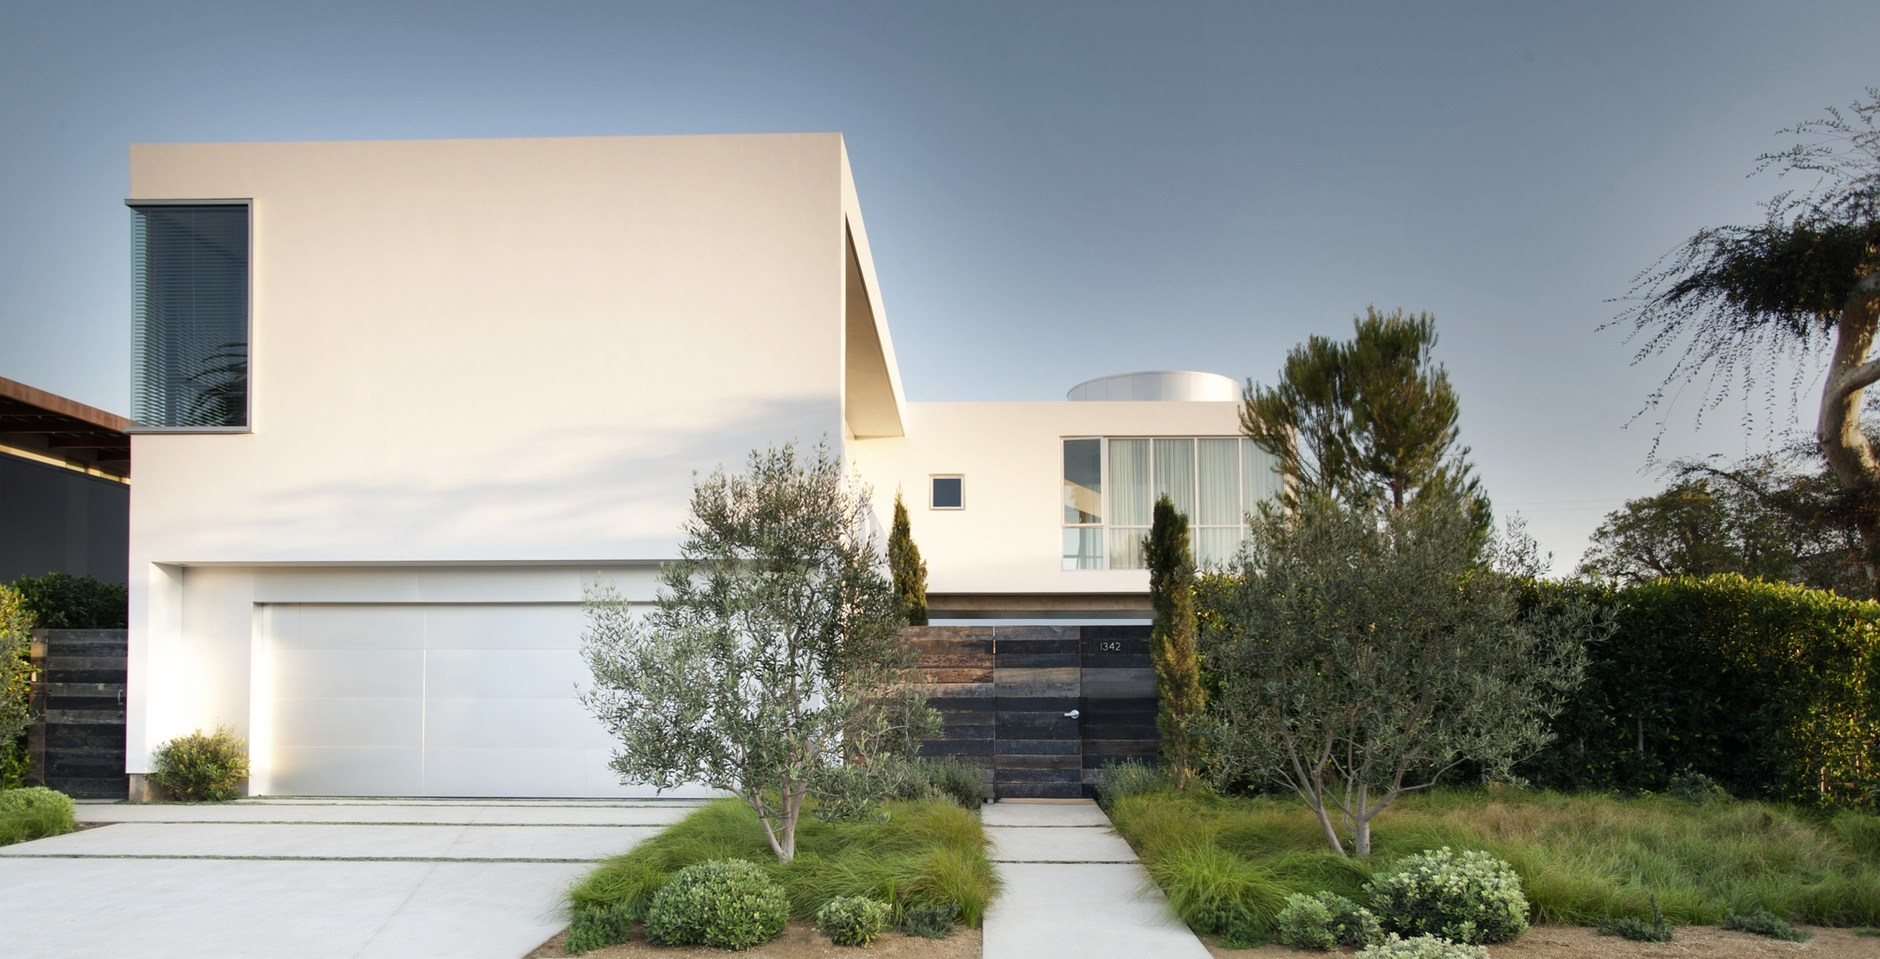 Modern family home by dennis gibbens architects karmatrendz for Modern stucco house